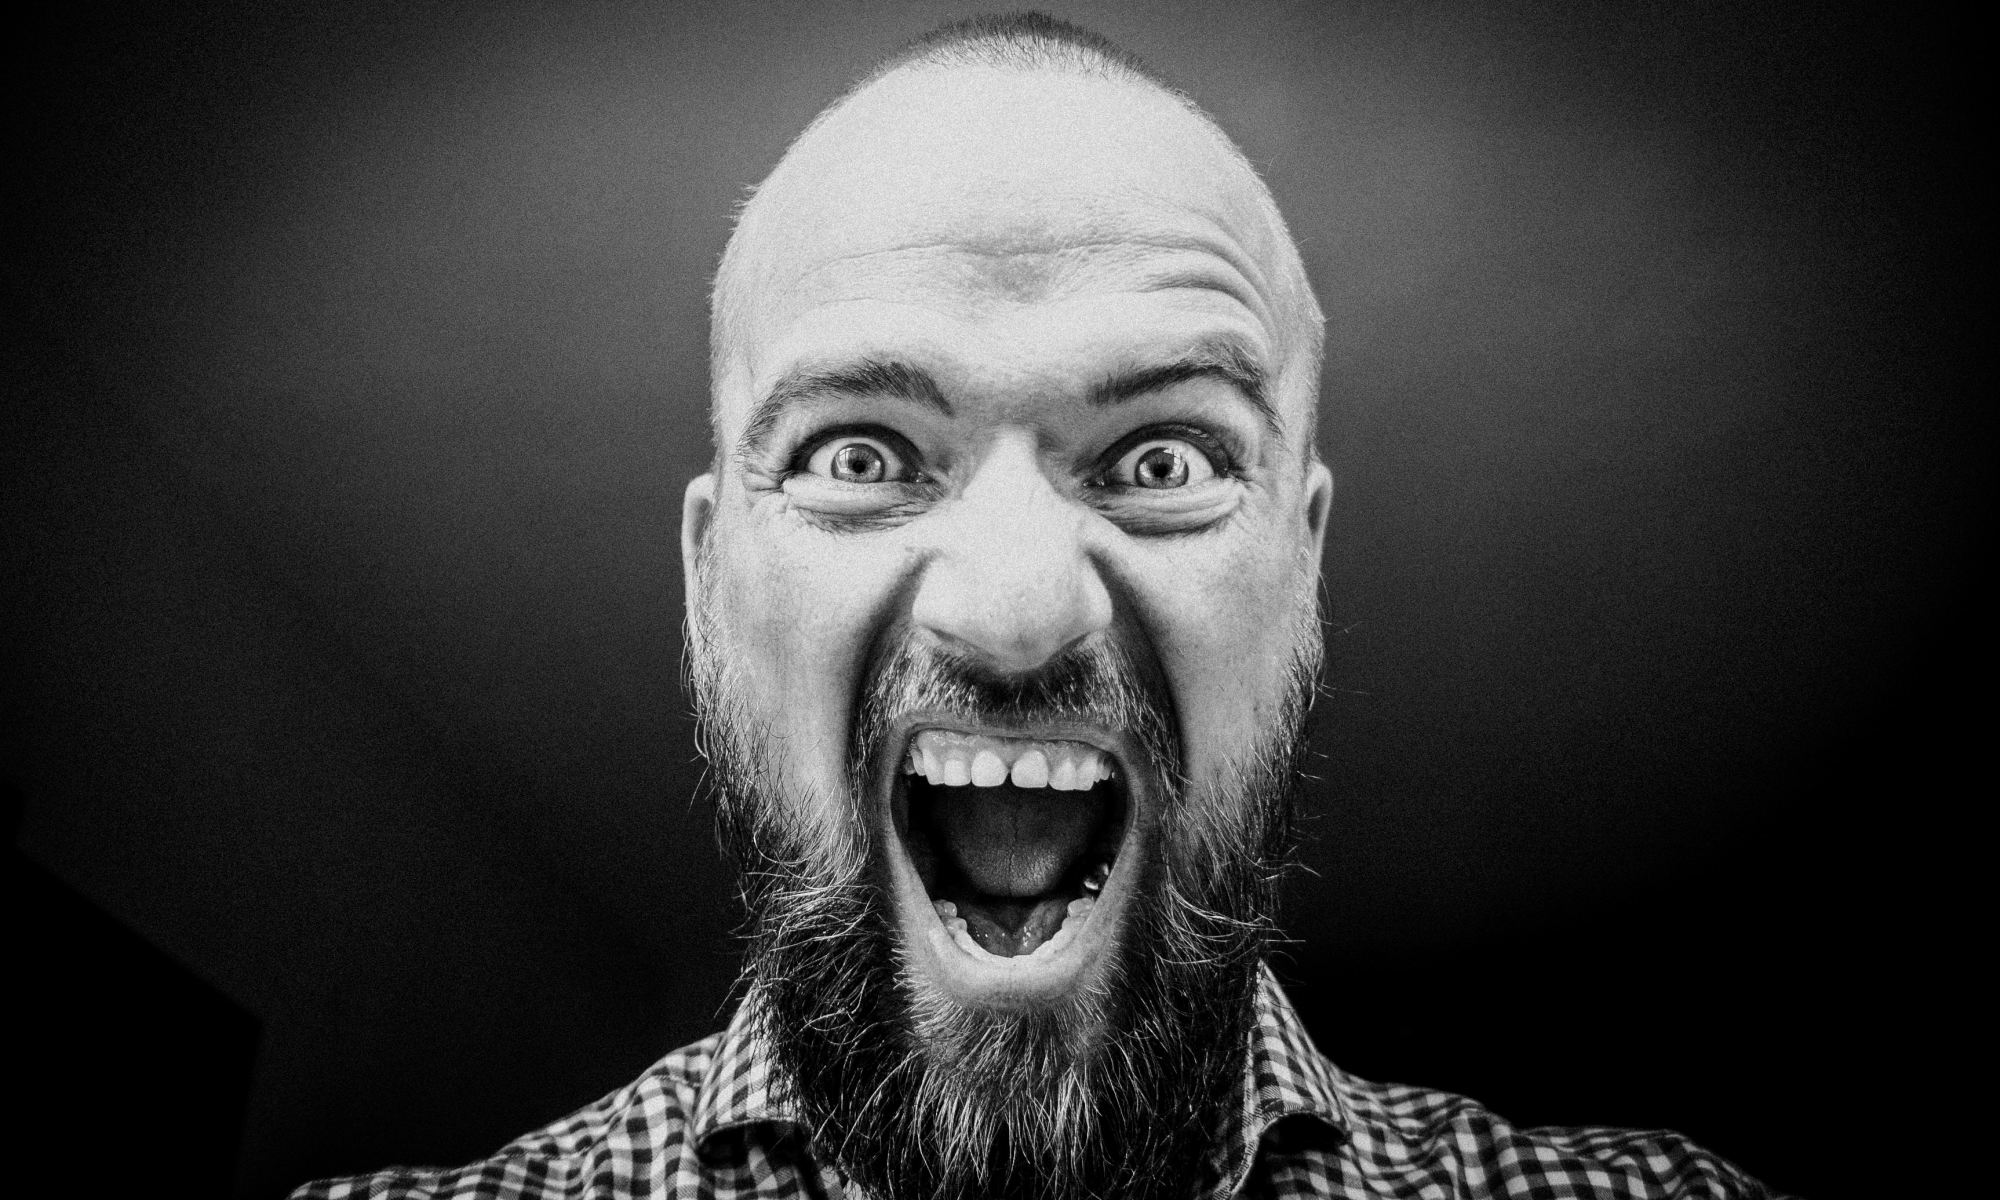 Grayscale photography of man experiencing brief psychotic disorder